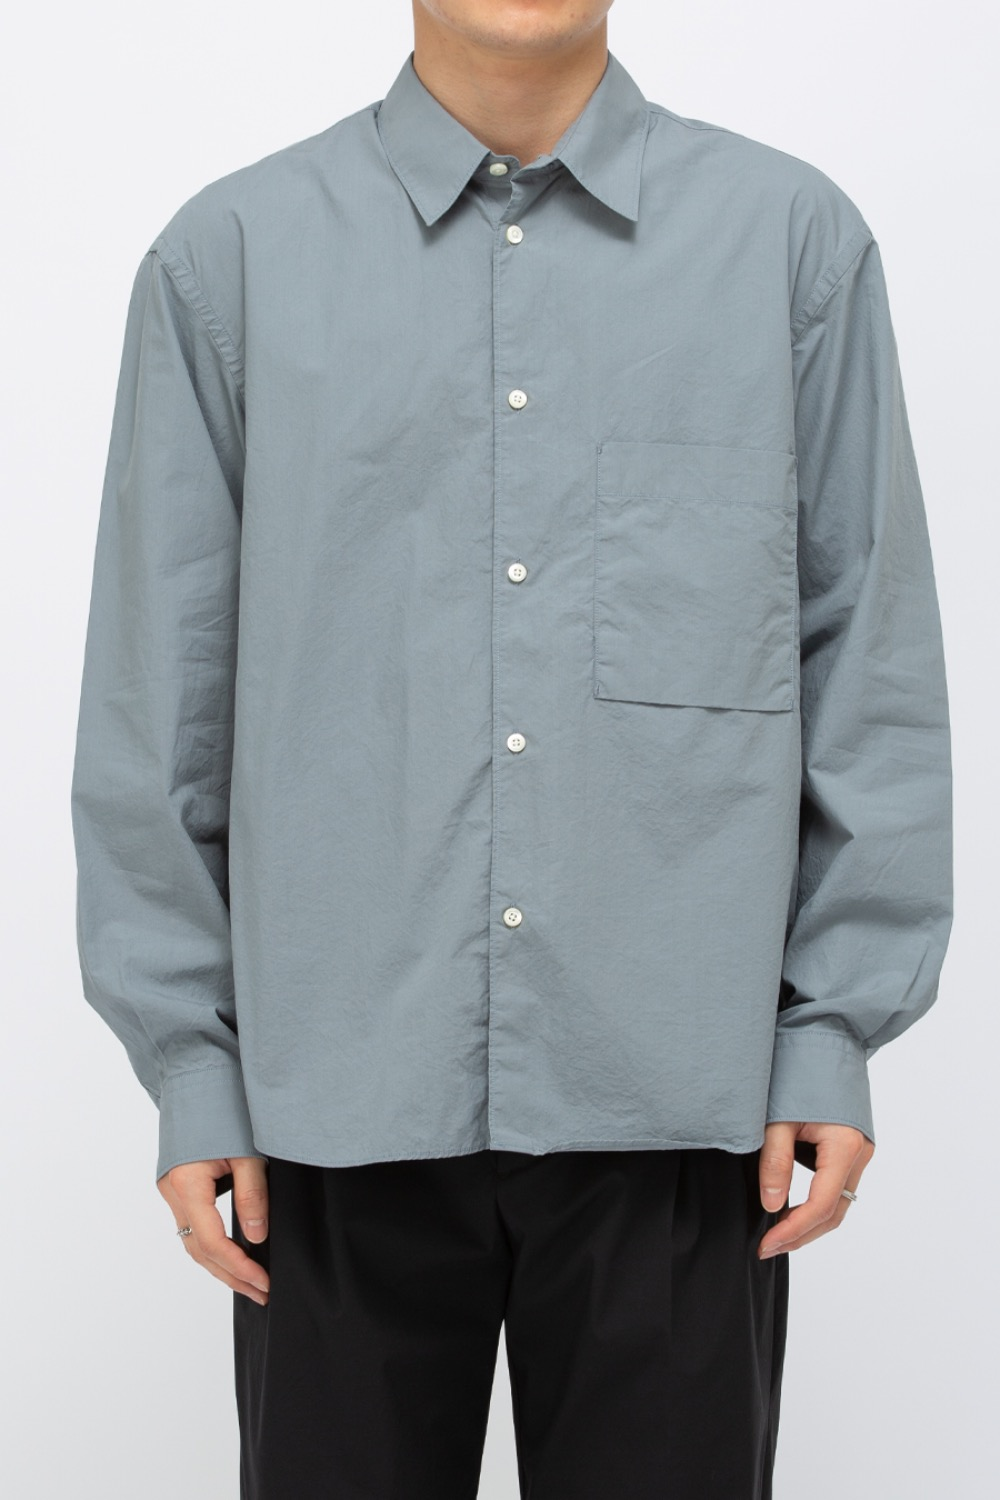 LOGO LABEL SHIRT BLUE